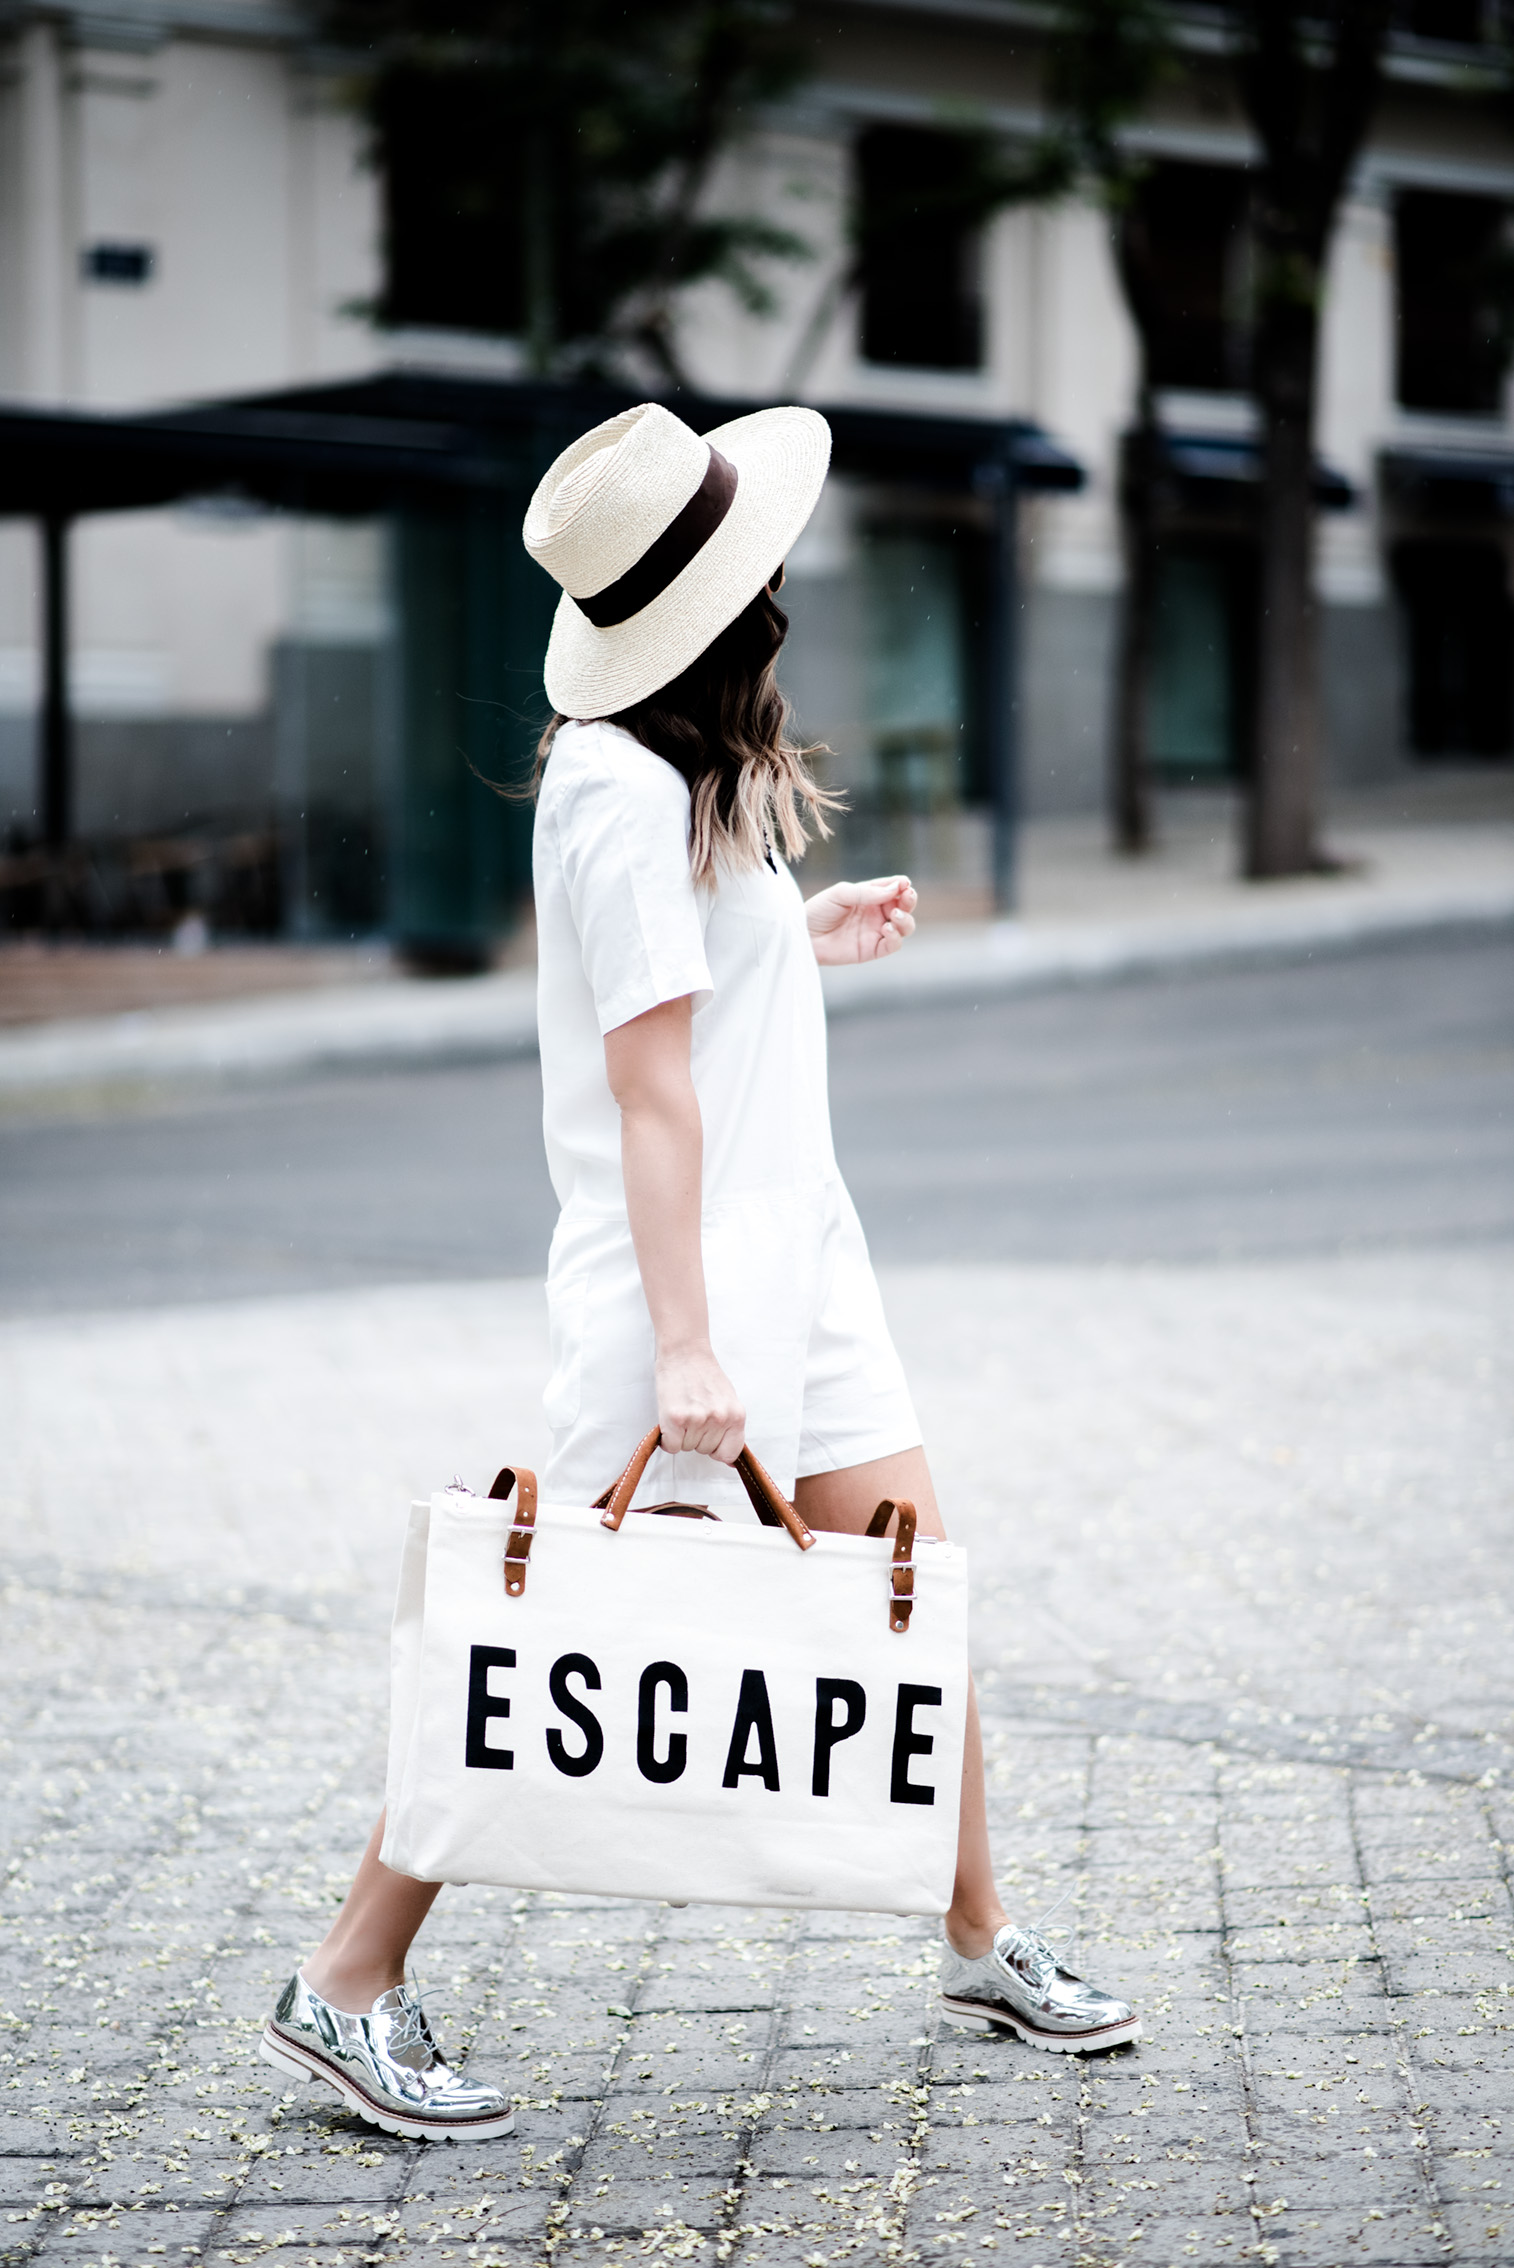 Tiffany Jais Houston fashion and lifestyle blogger   The perfect travel bag, travel bag for women, travel outfit women, brixton willow hat, Forestbound ESCAPE bag, silver oxfords,